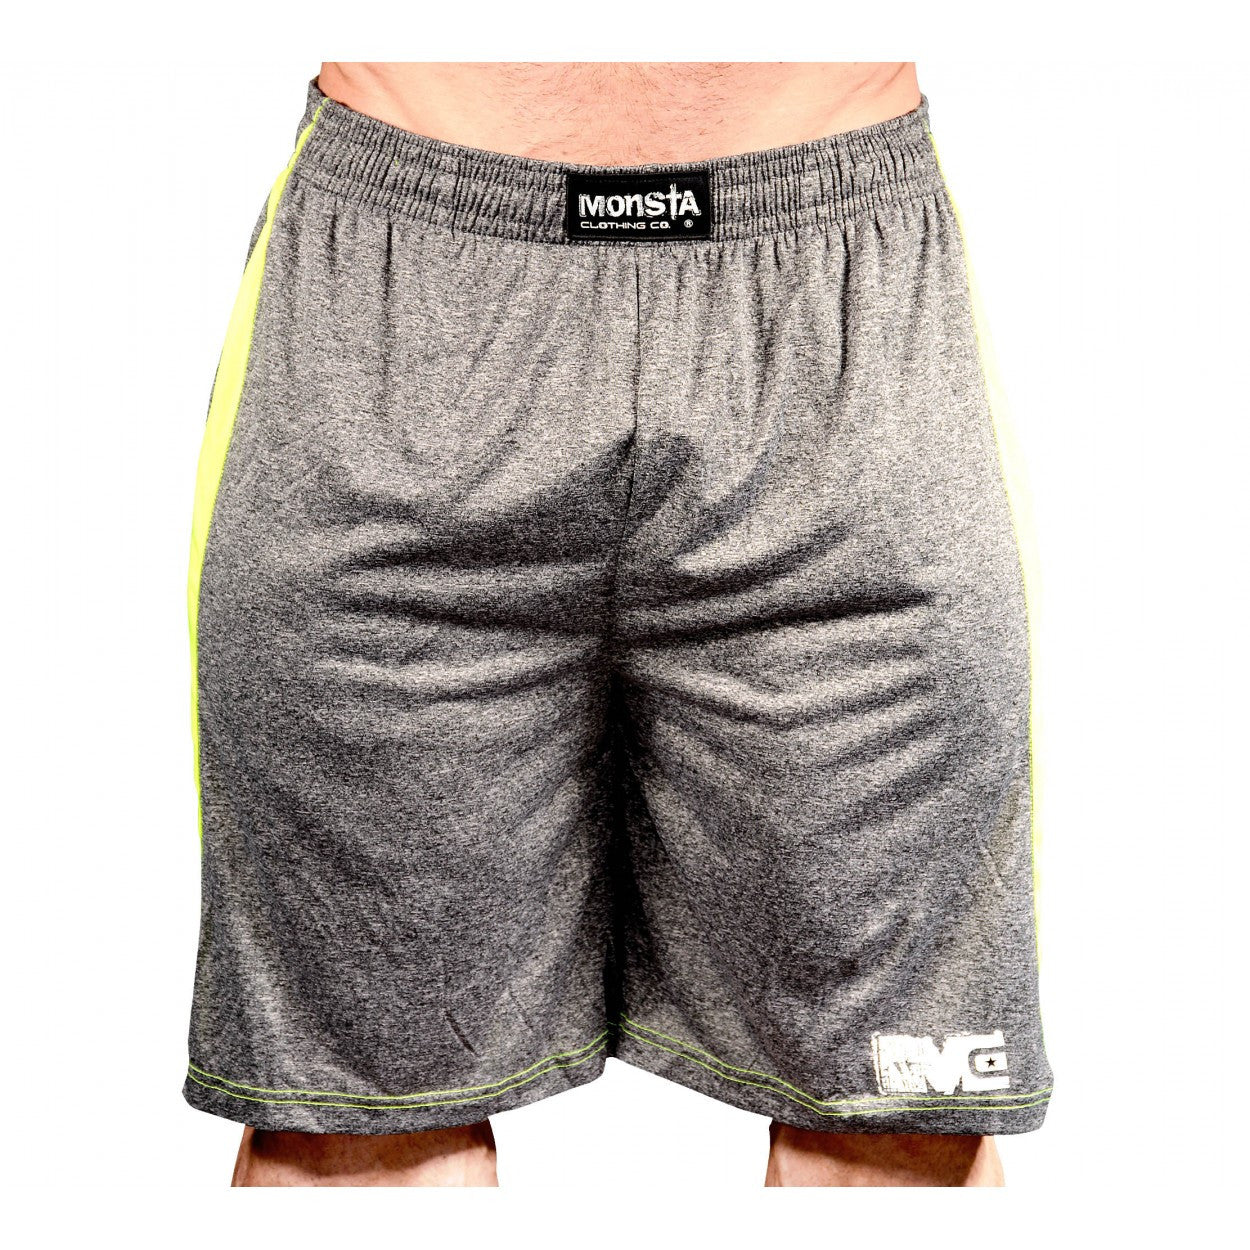 Shorts: Monsta Stripe - Monsta Clothing Australia